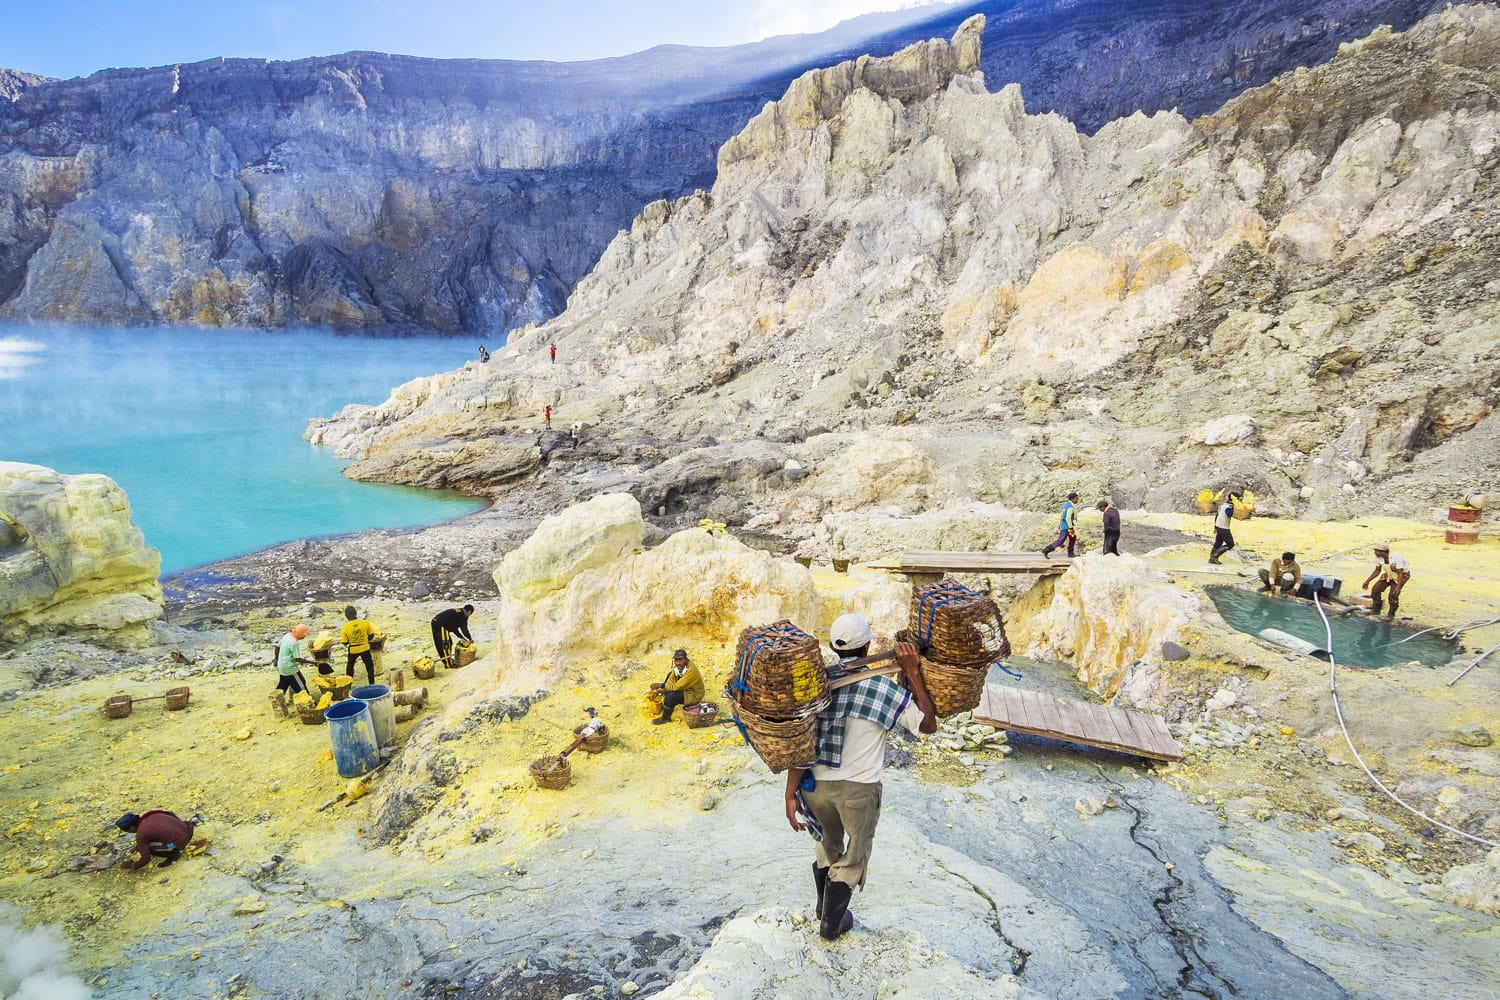 Sulfur miner hiking down into the crater of Kawah Ijen volcano in East Java, Indonesia.